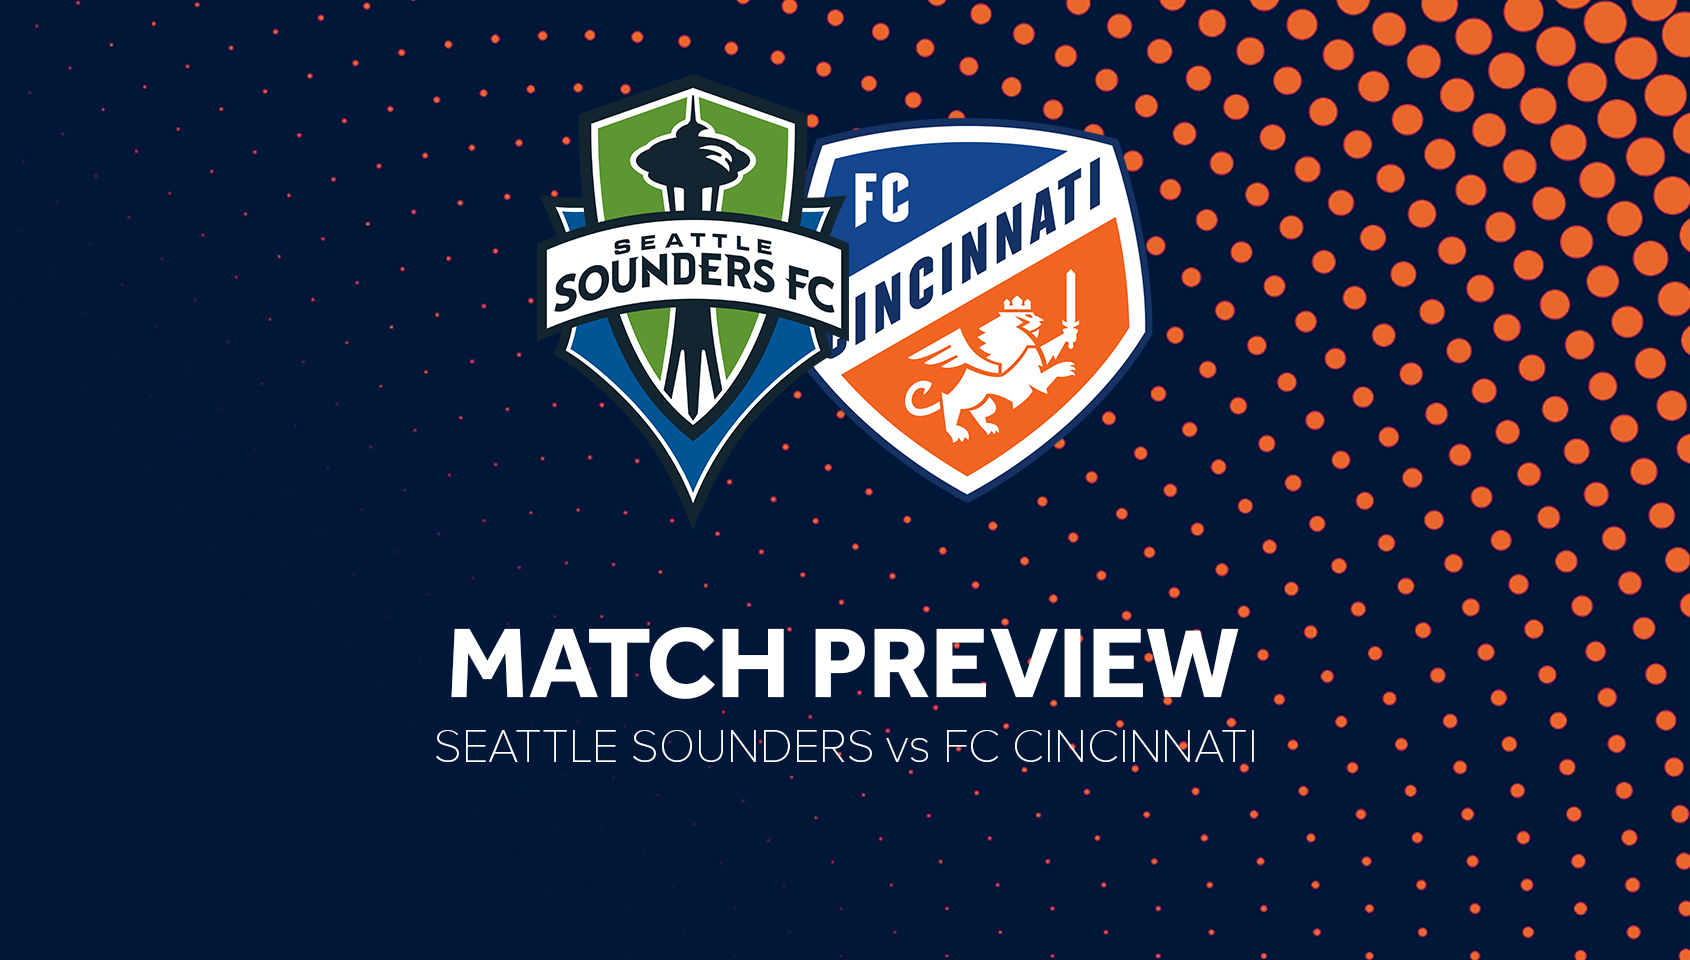 d7afe275372 The time has come for MLS newcomers FC Cincinnati to kick off its first MLS  season. The preseason is over and things get real. When the MLS schedule  was ...